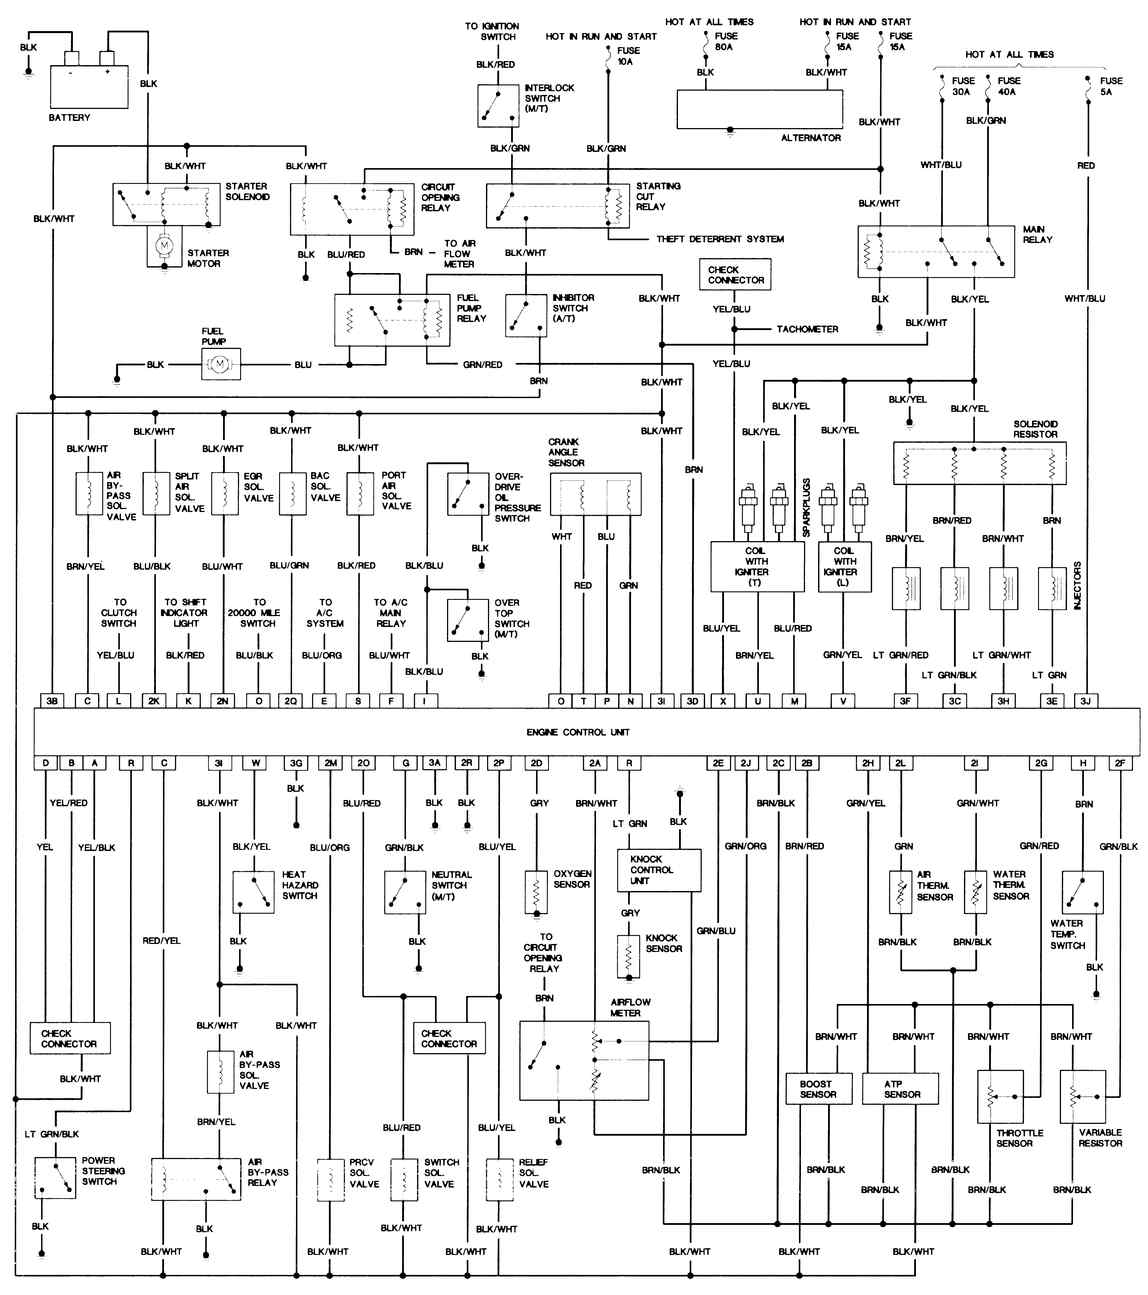 1987 Mazda Rx7 Wiring Diagram Real For 1988 B2200 Engine 88 Supra Get Free Image About Rx 7 1990